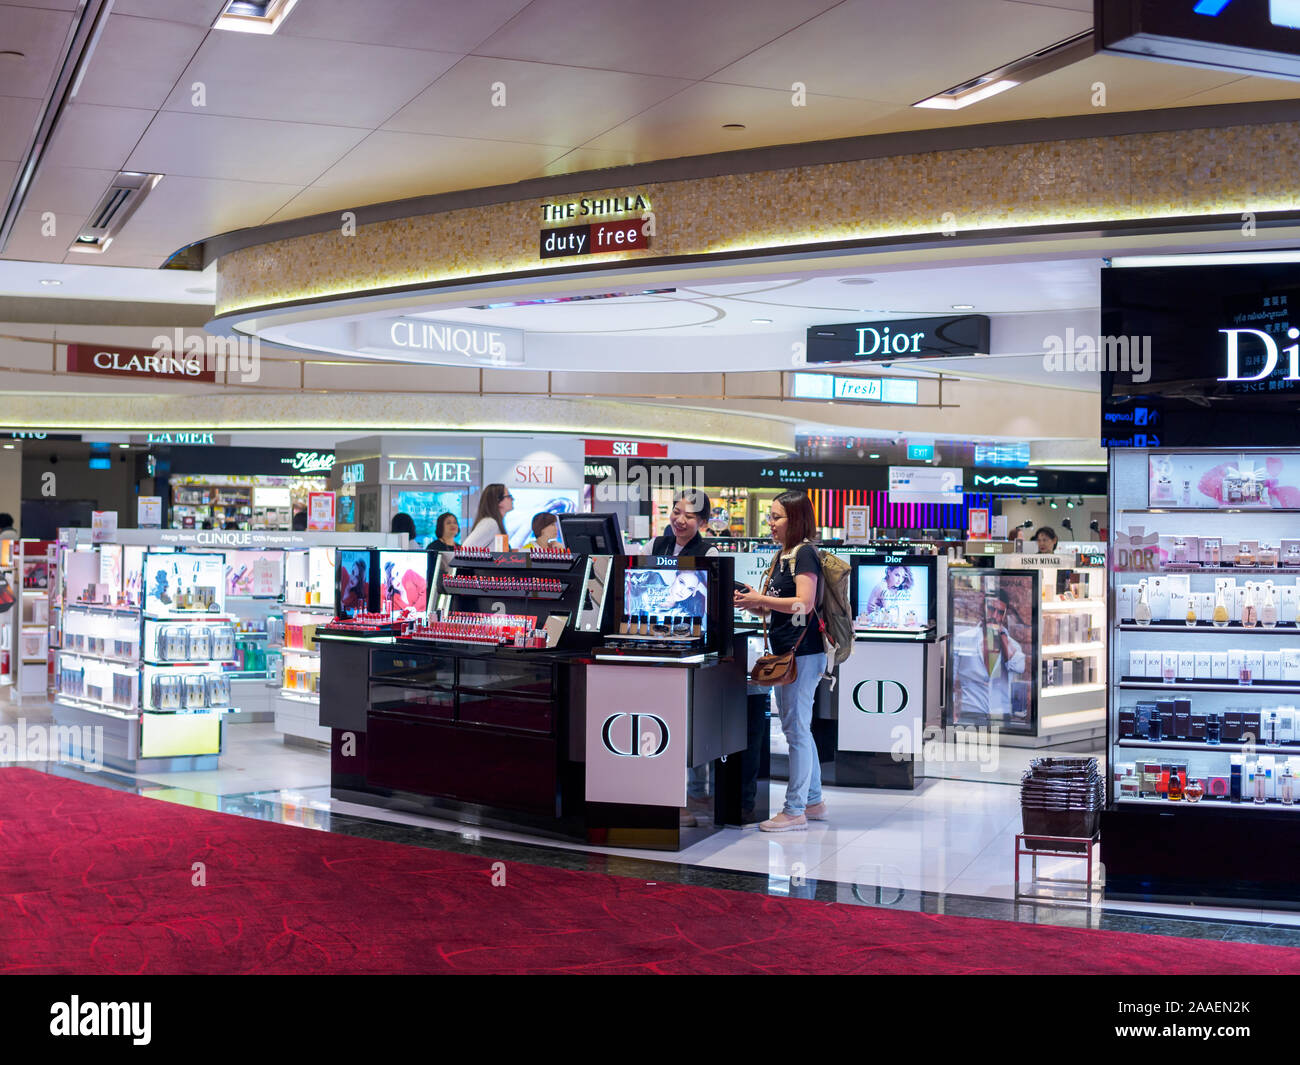 SINGAPORE - 5 OCT 2019 – Women customers shopping at The Shilla Duty Free store at Singapore Changi airport Terminal 1 Stock Photo